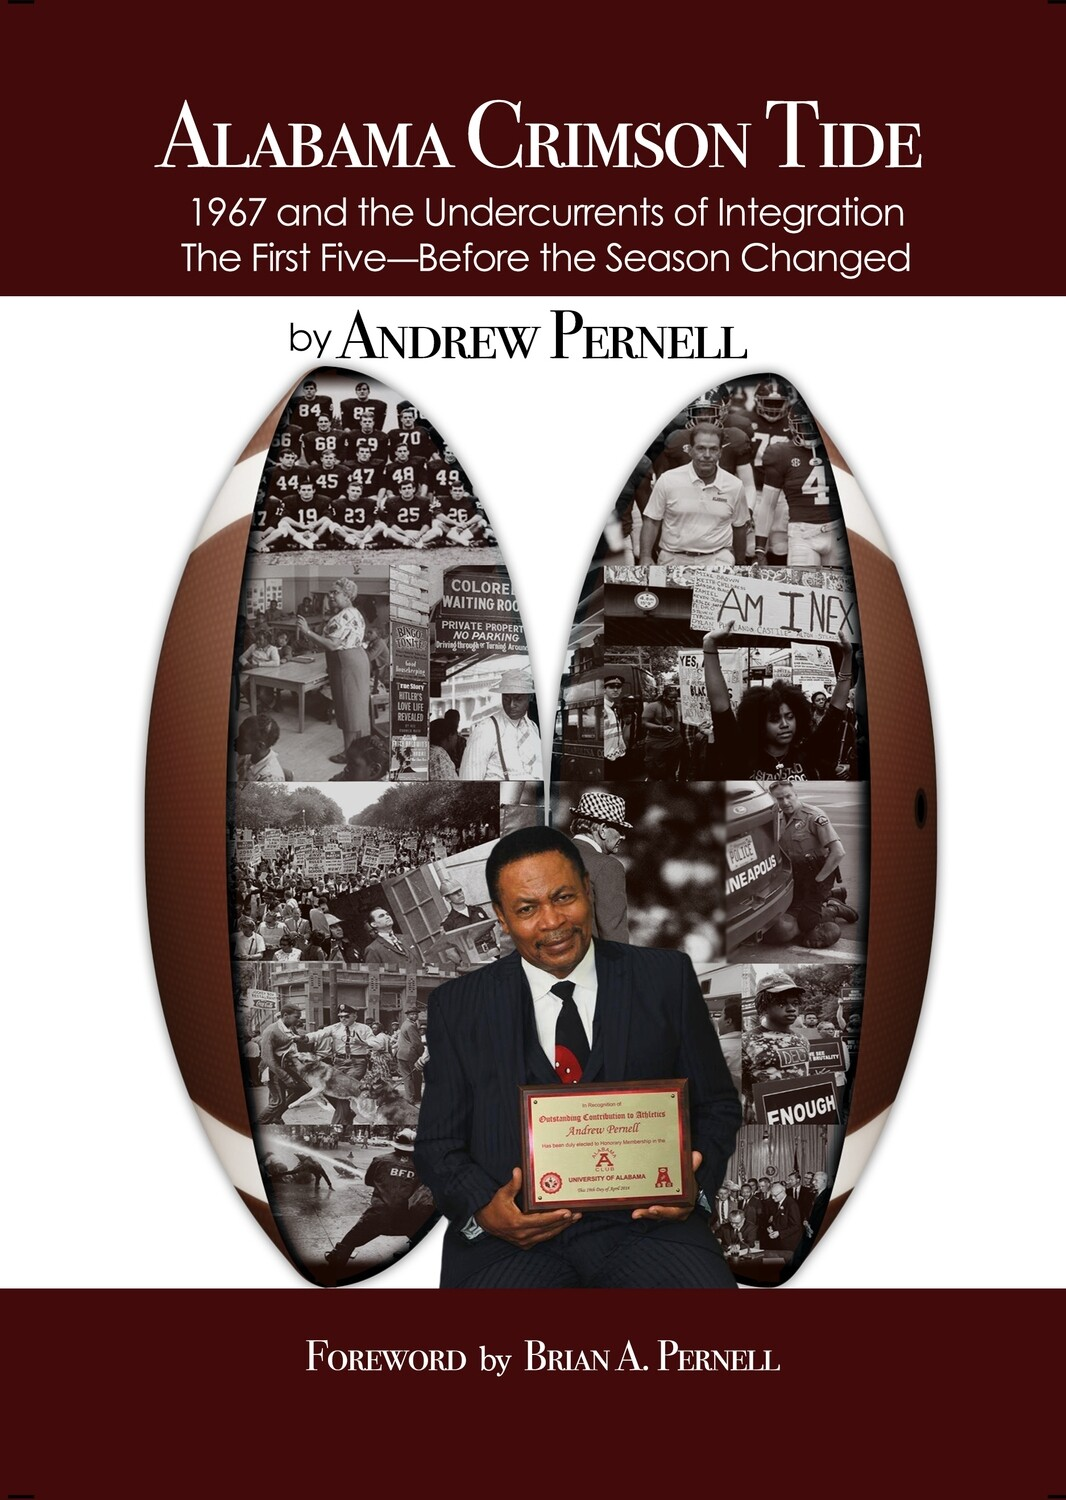 Alabama Crimson Tide: 1967 and the Undercurrents of Integration The First Five---Before the Season Changed